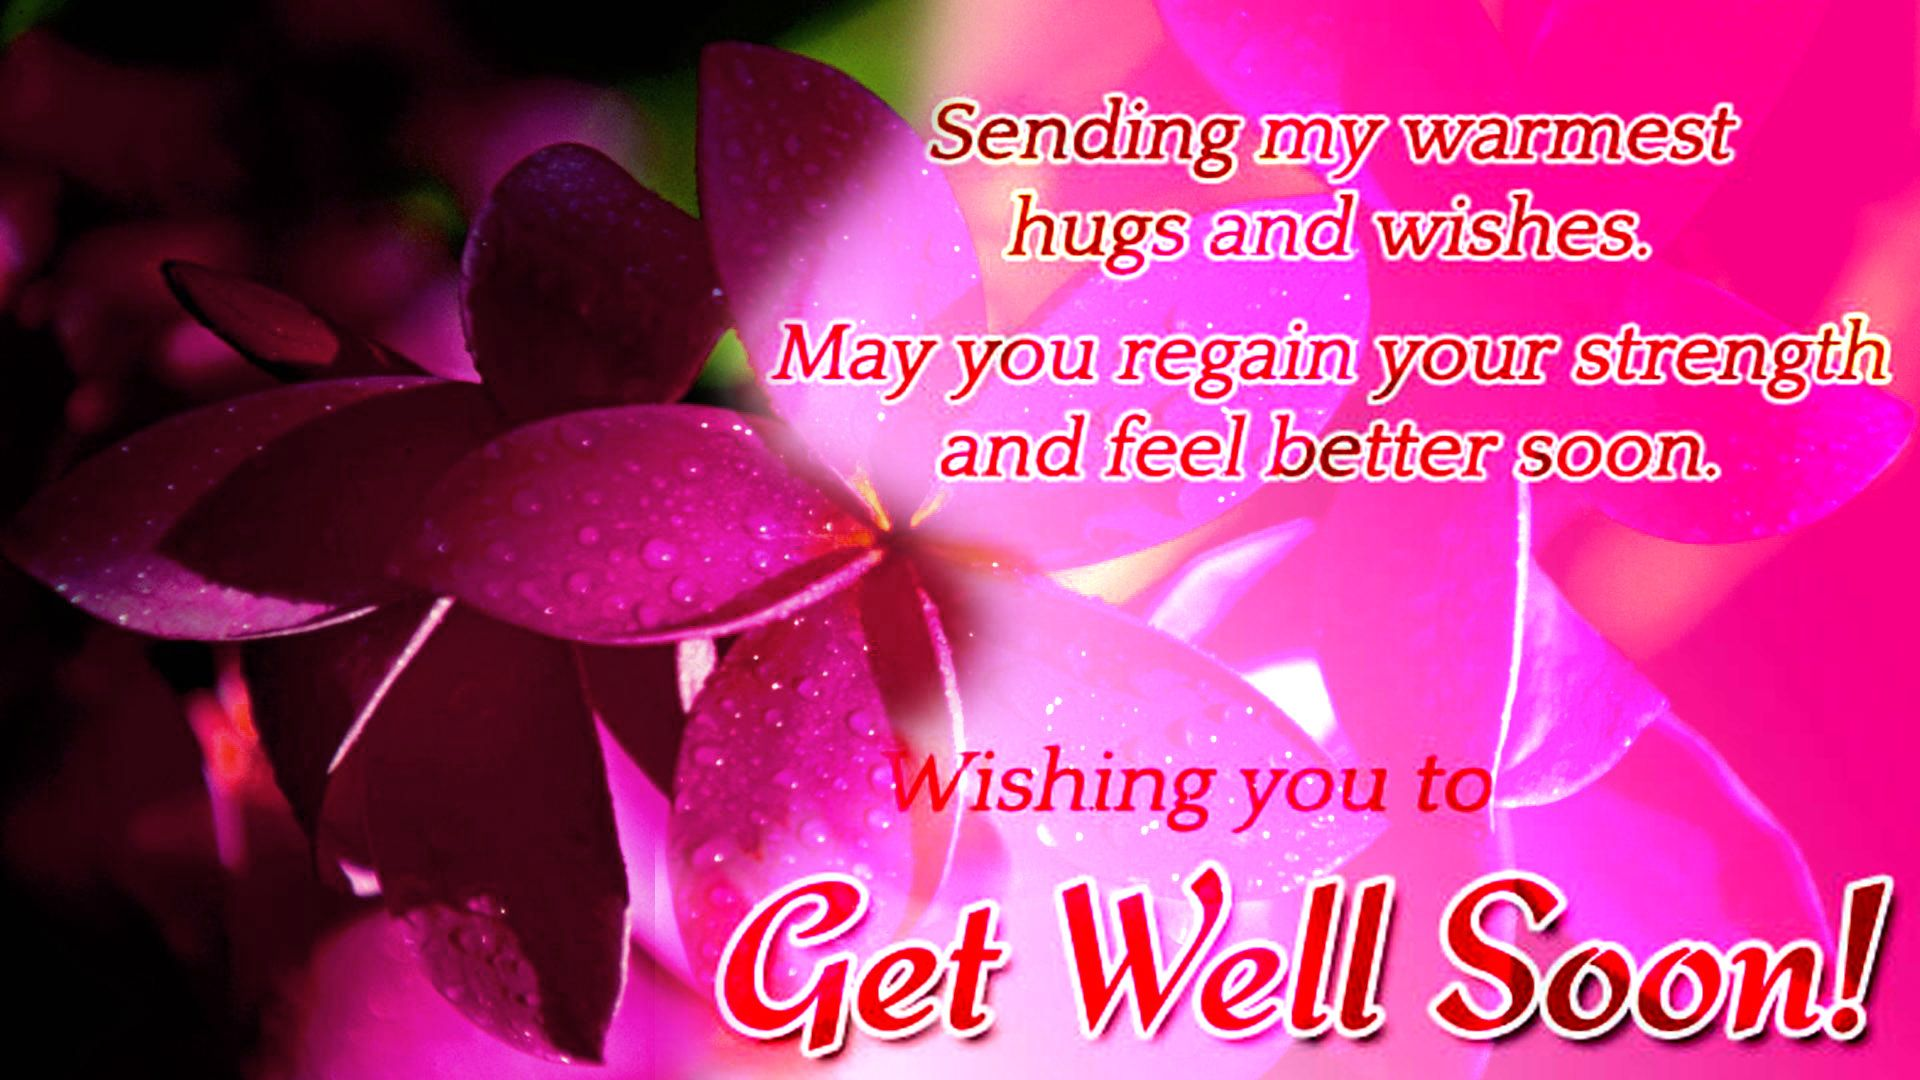 Sophisticated Him Get Well Soon Messages After Accident Get Well Soon Wallpaper Get Well Soon Wallpaper Get Well Soon Messages cards Get Well Soon Messages